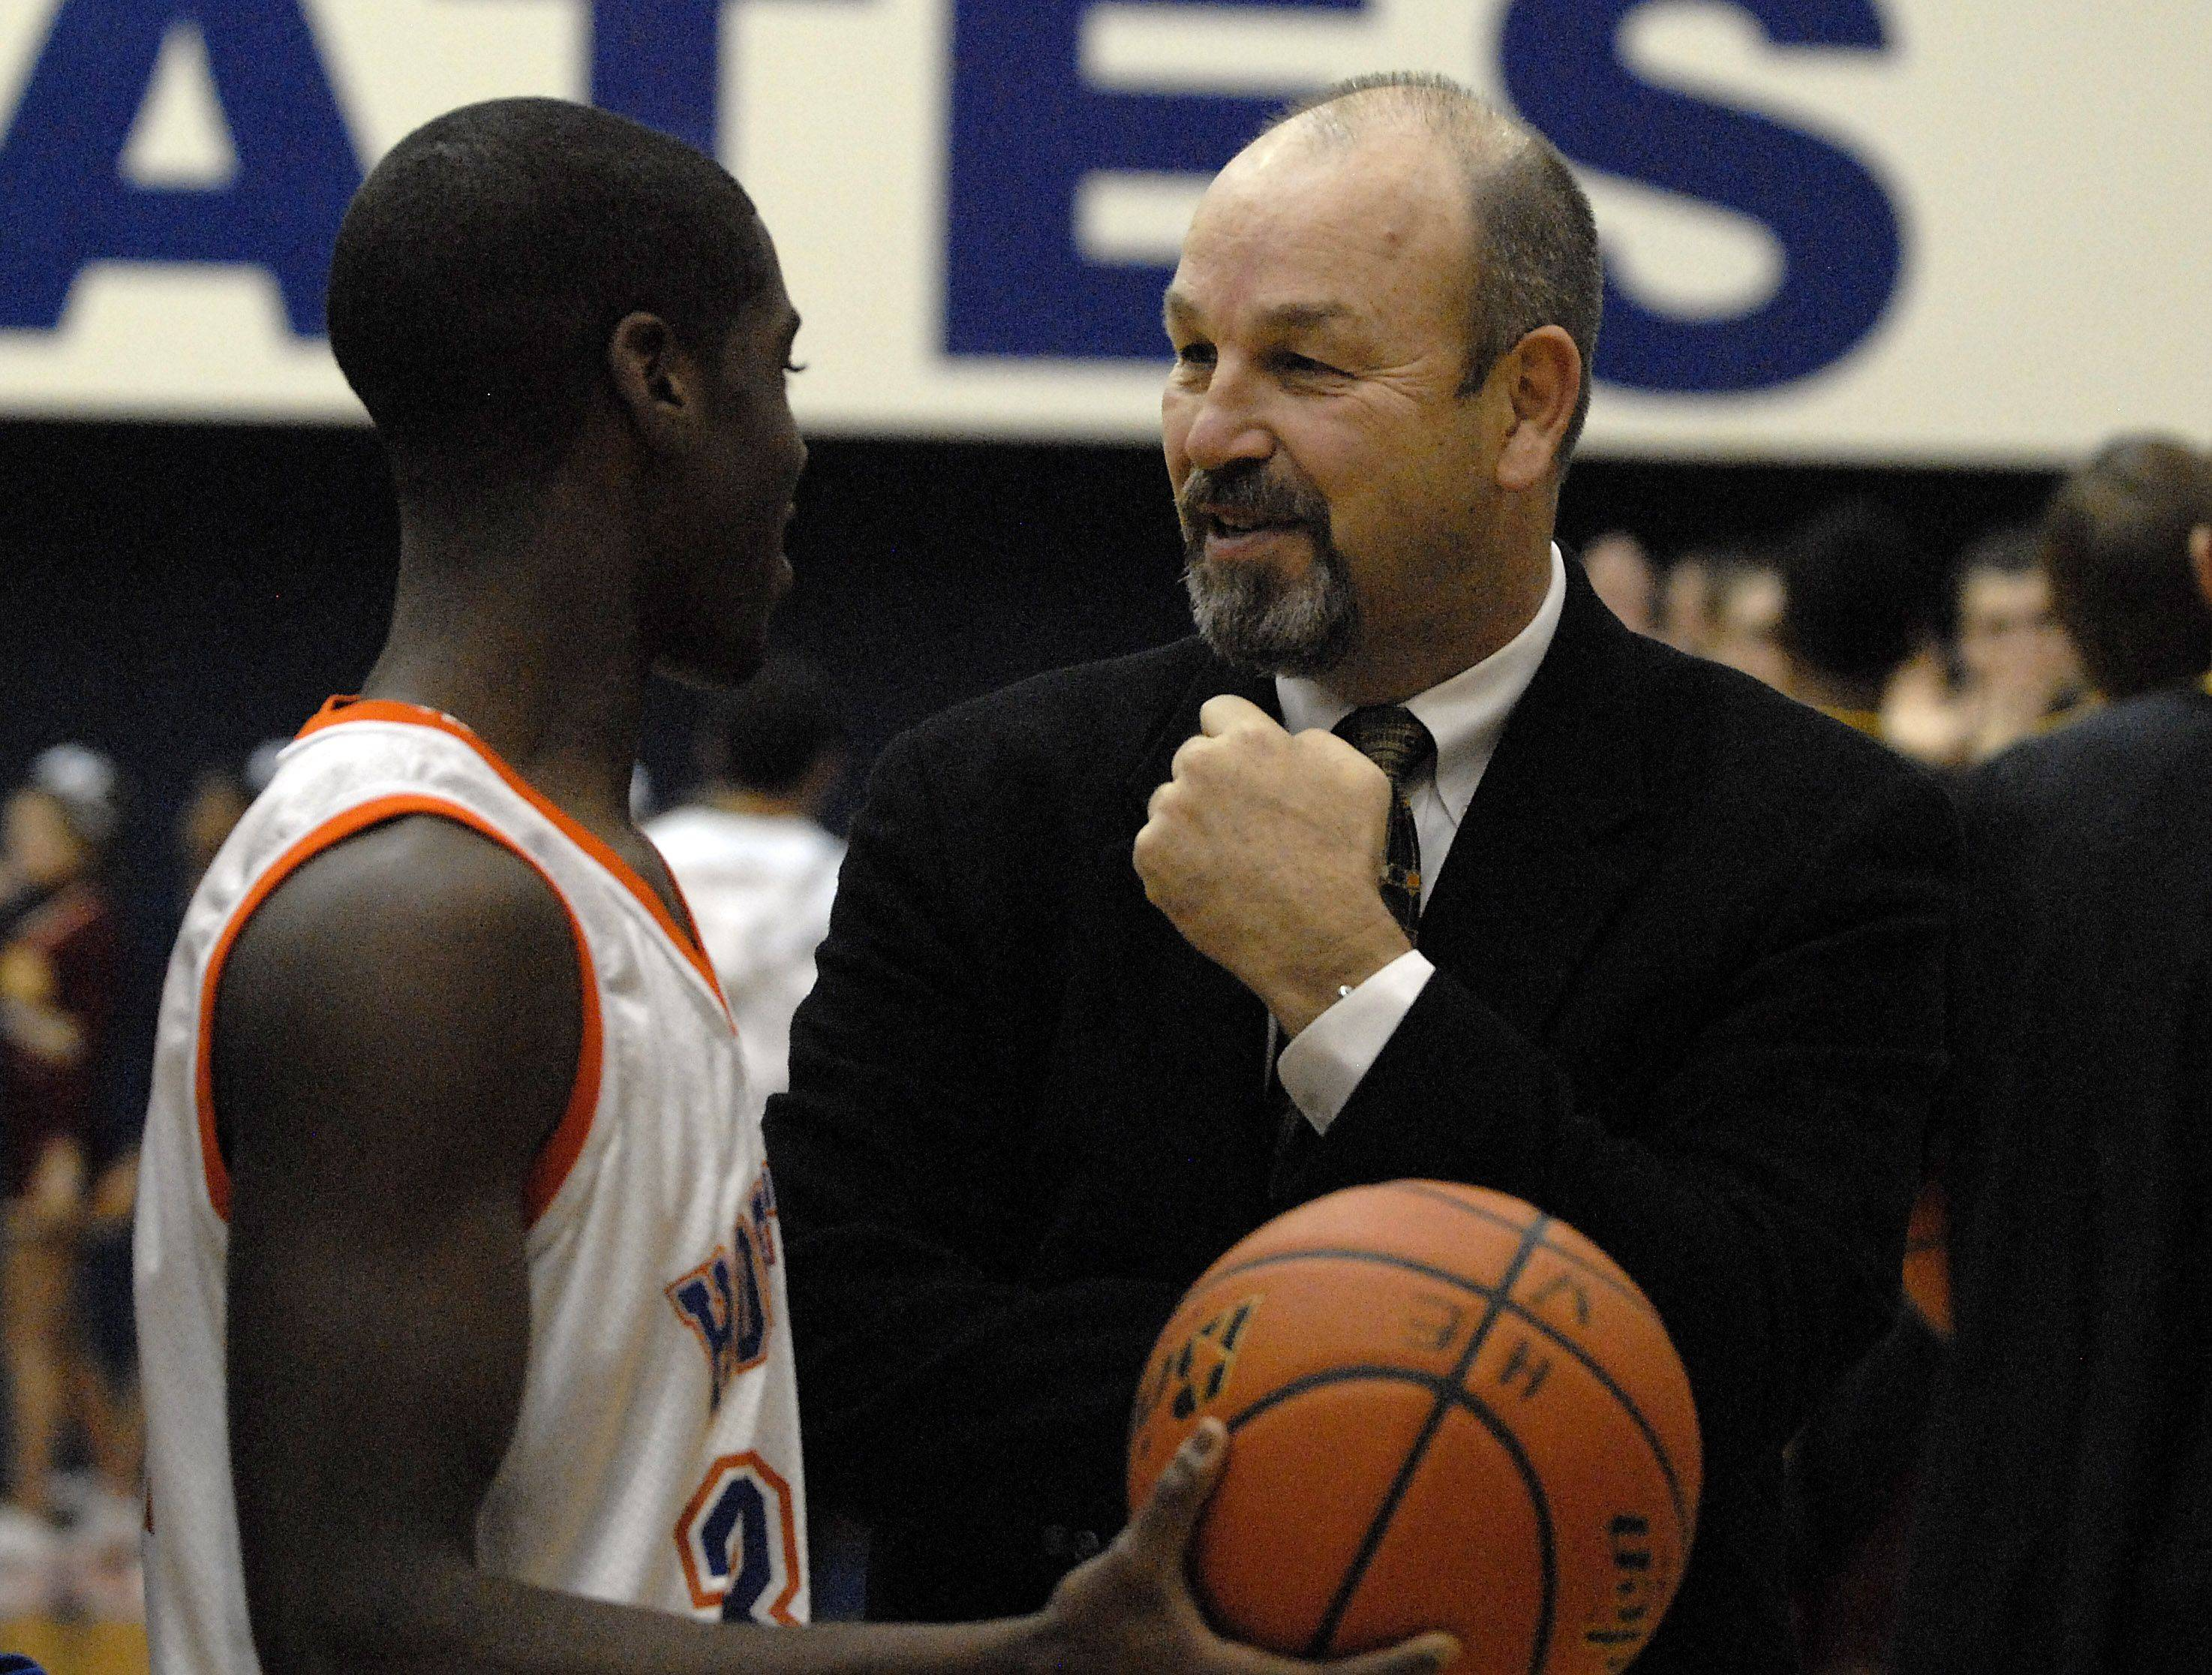 Hoffman Estates boys basketball head coach Bill Wandro talks to his player, Austin Terry, before the game .